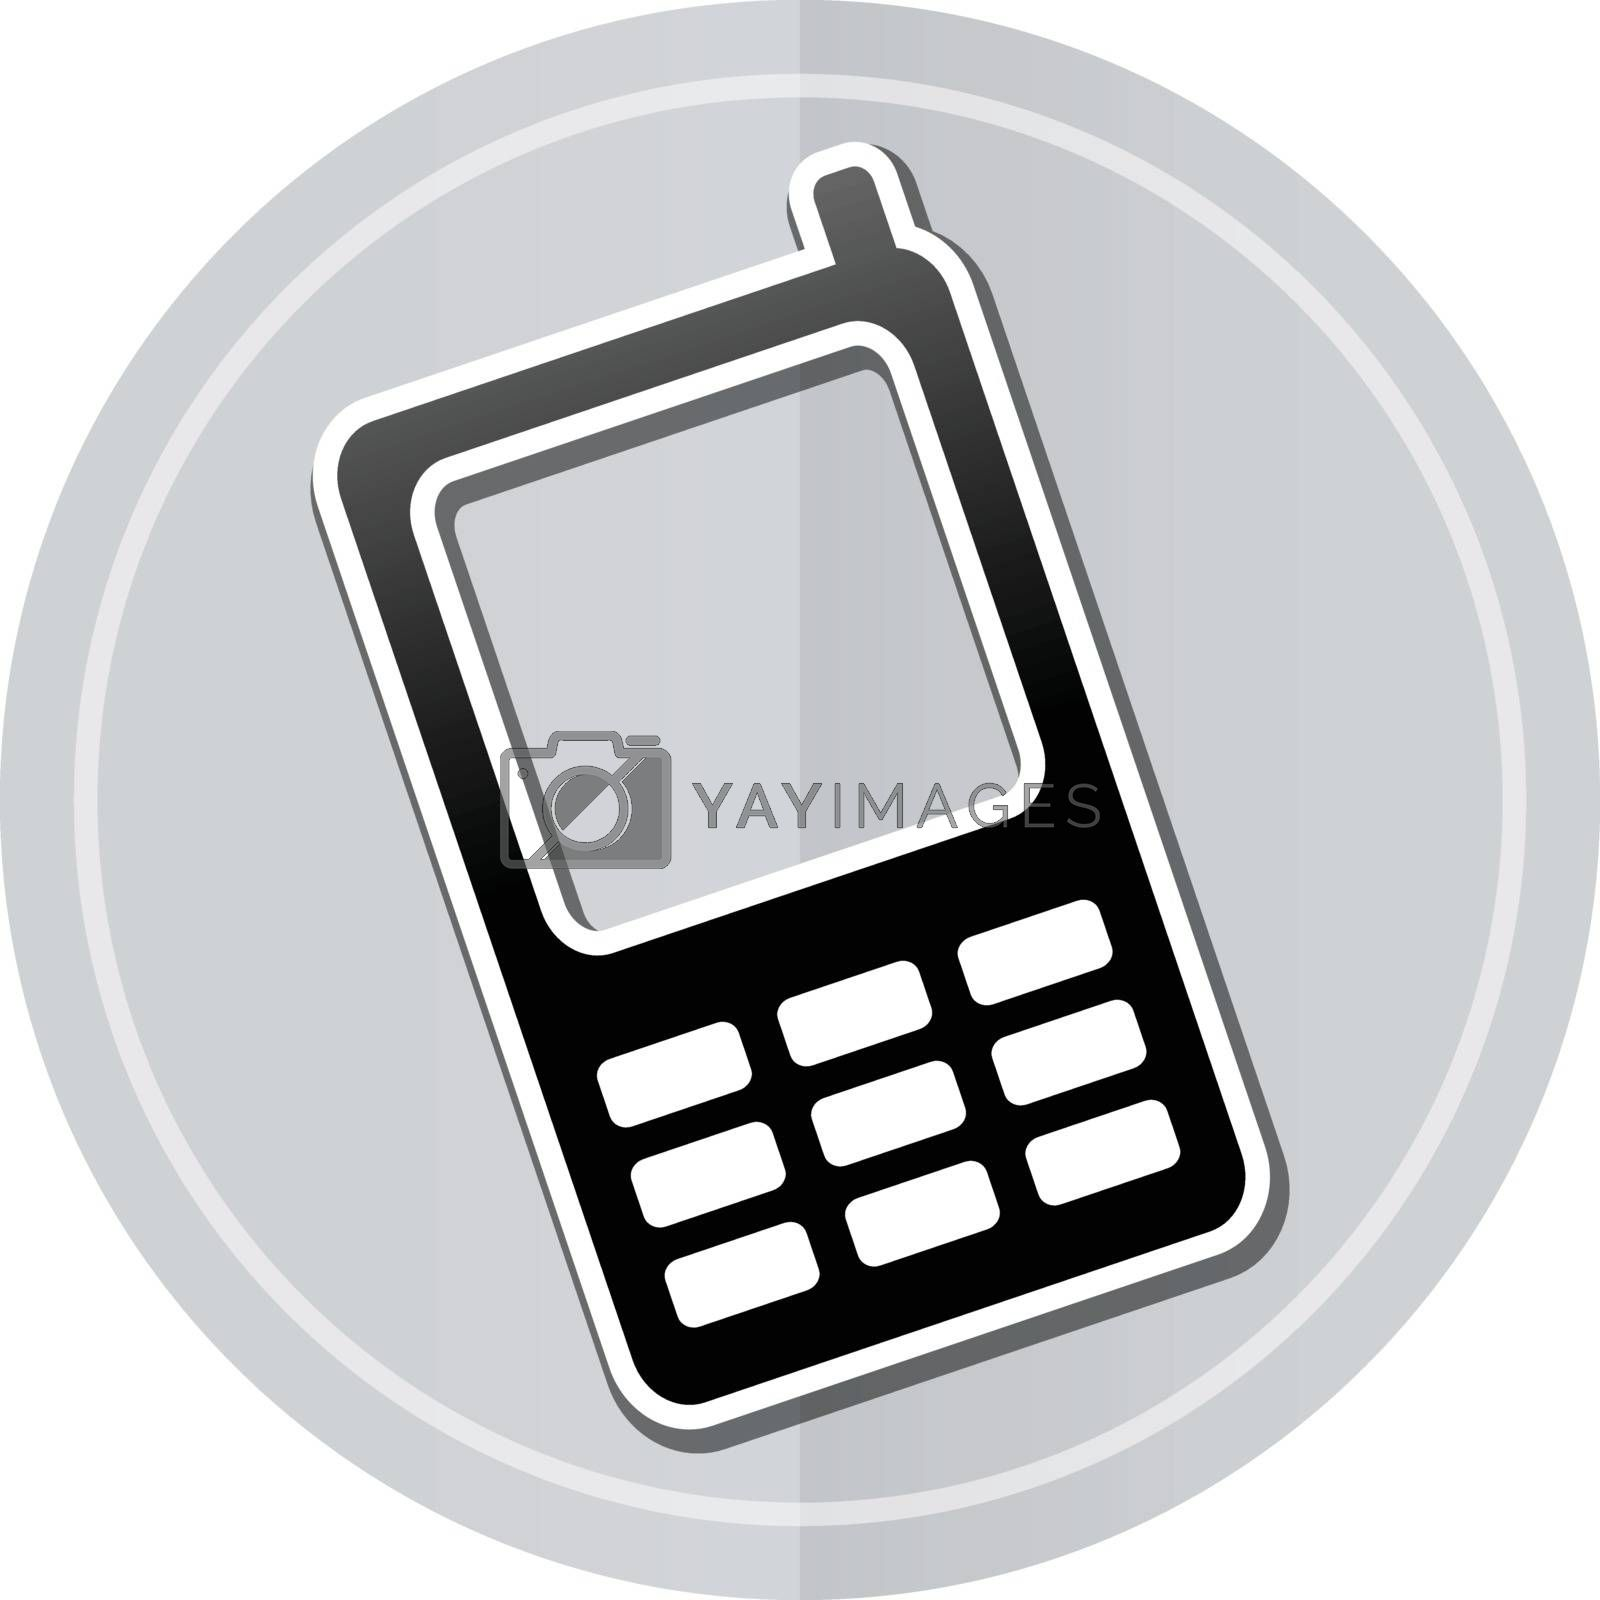 Illustration of mobile phone sticker icon simple design